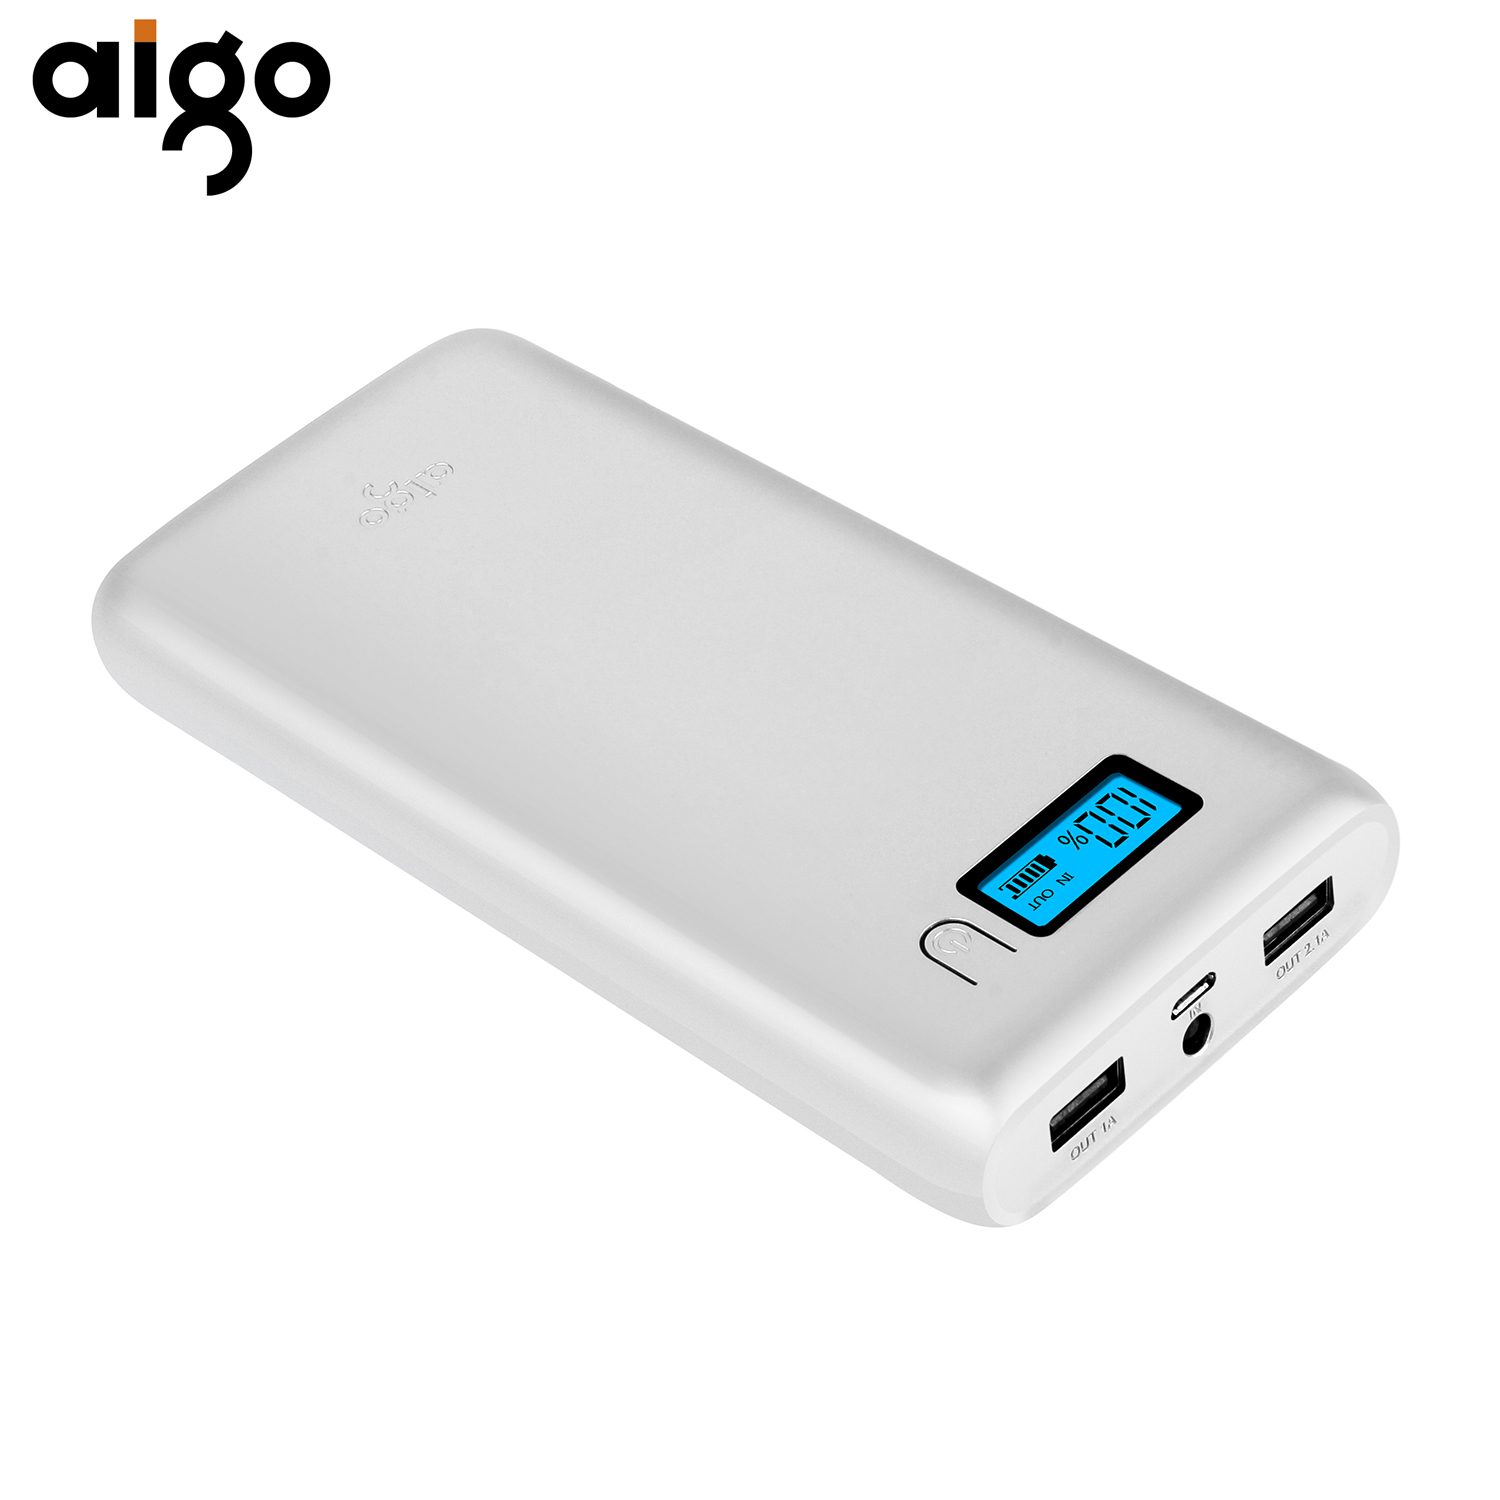 Aigo W20000 20000mAh Battery Charger Large Capacity Fast Charging Power Bank LCD External Backup Power Supply